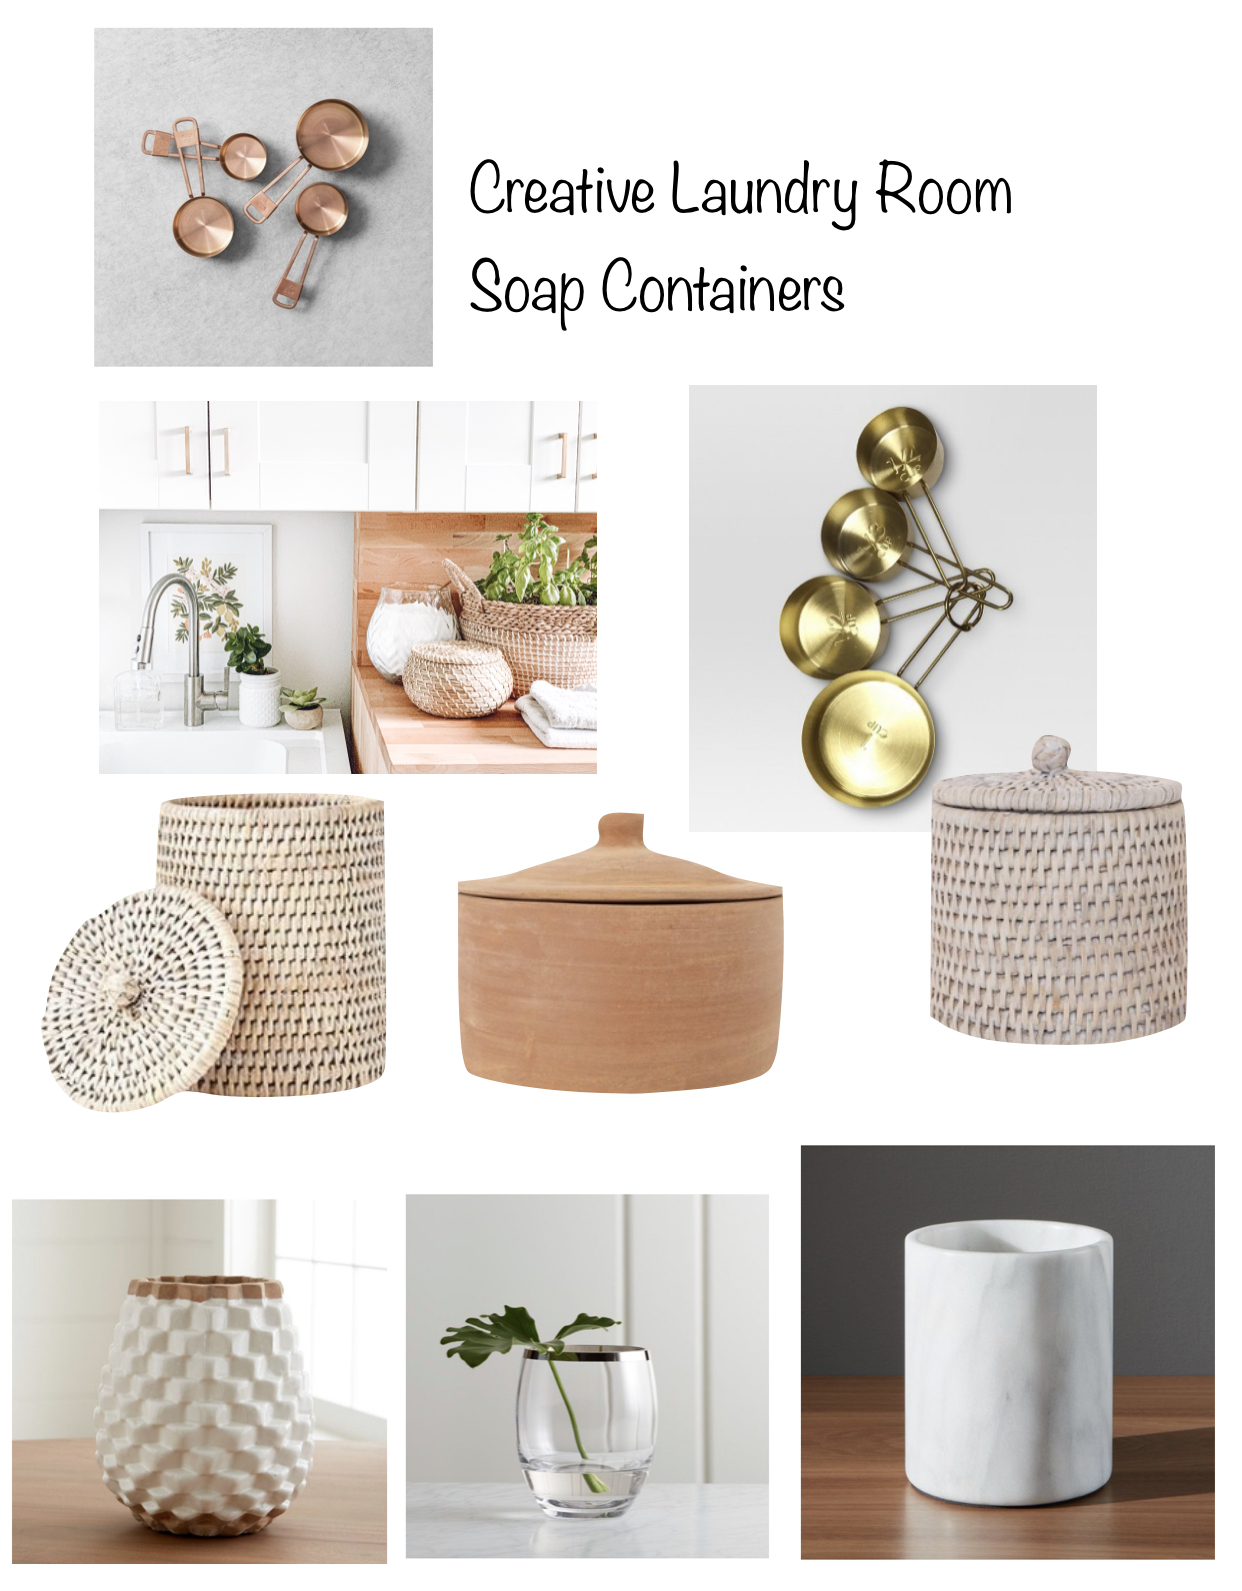 creative laundry room soap containers